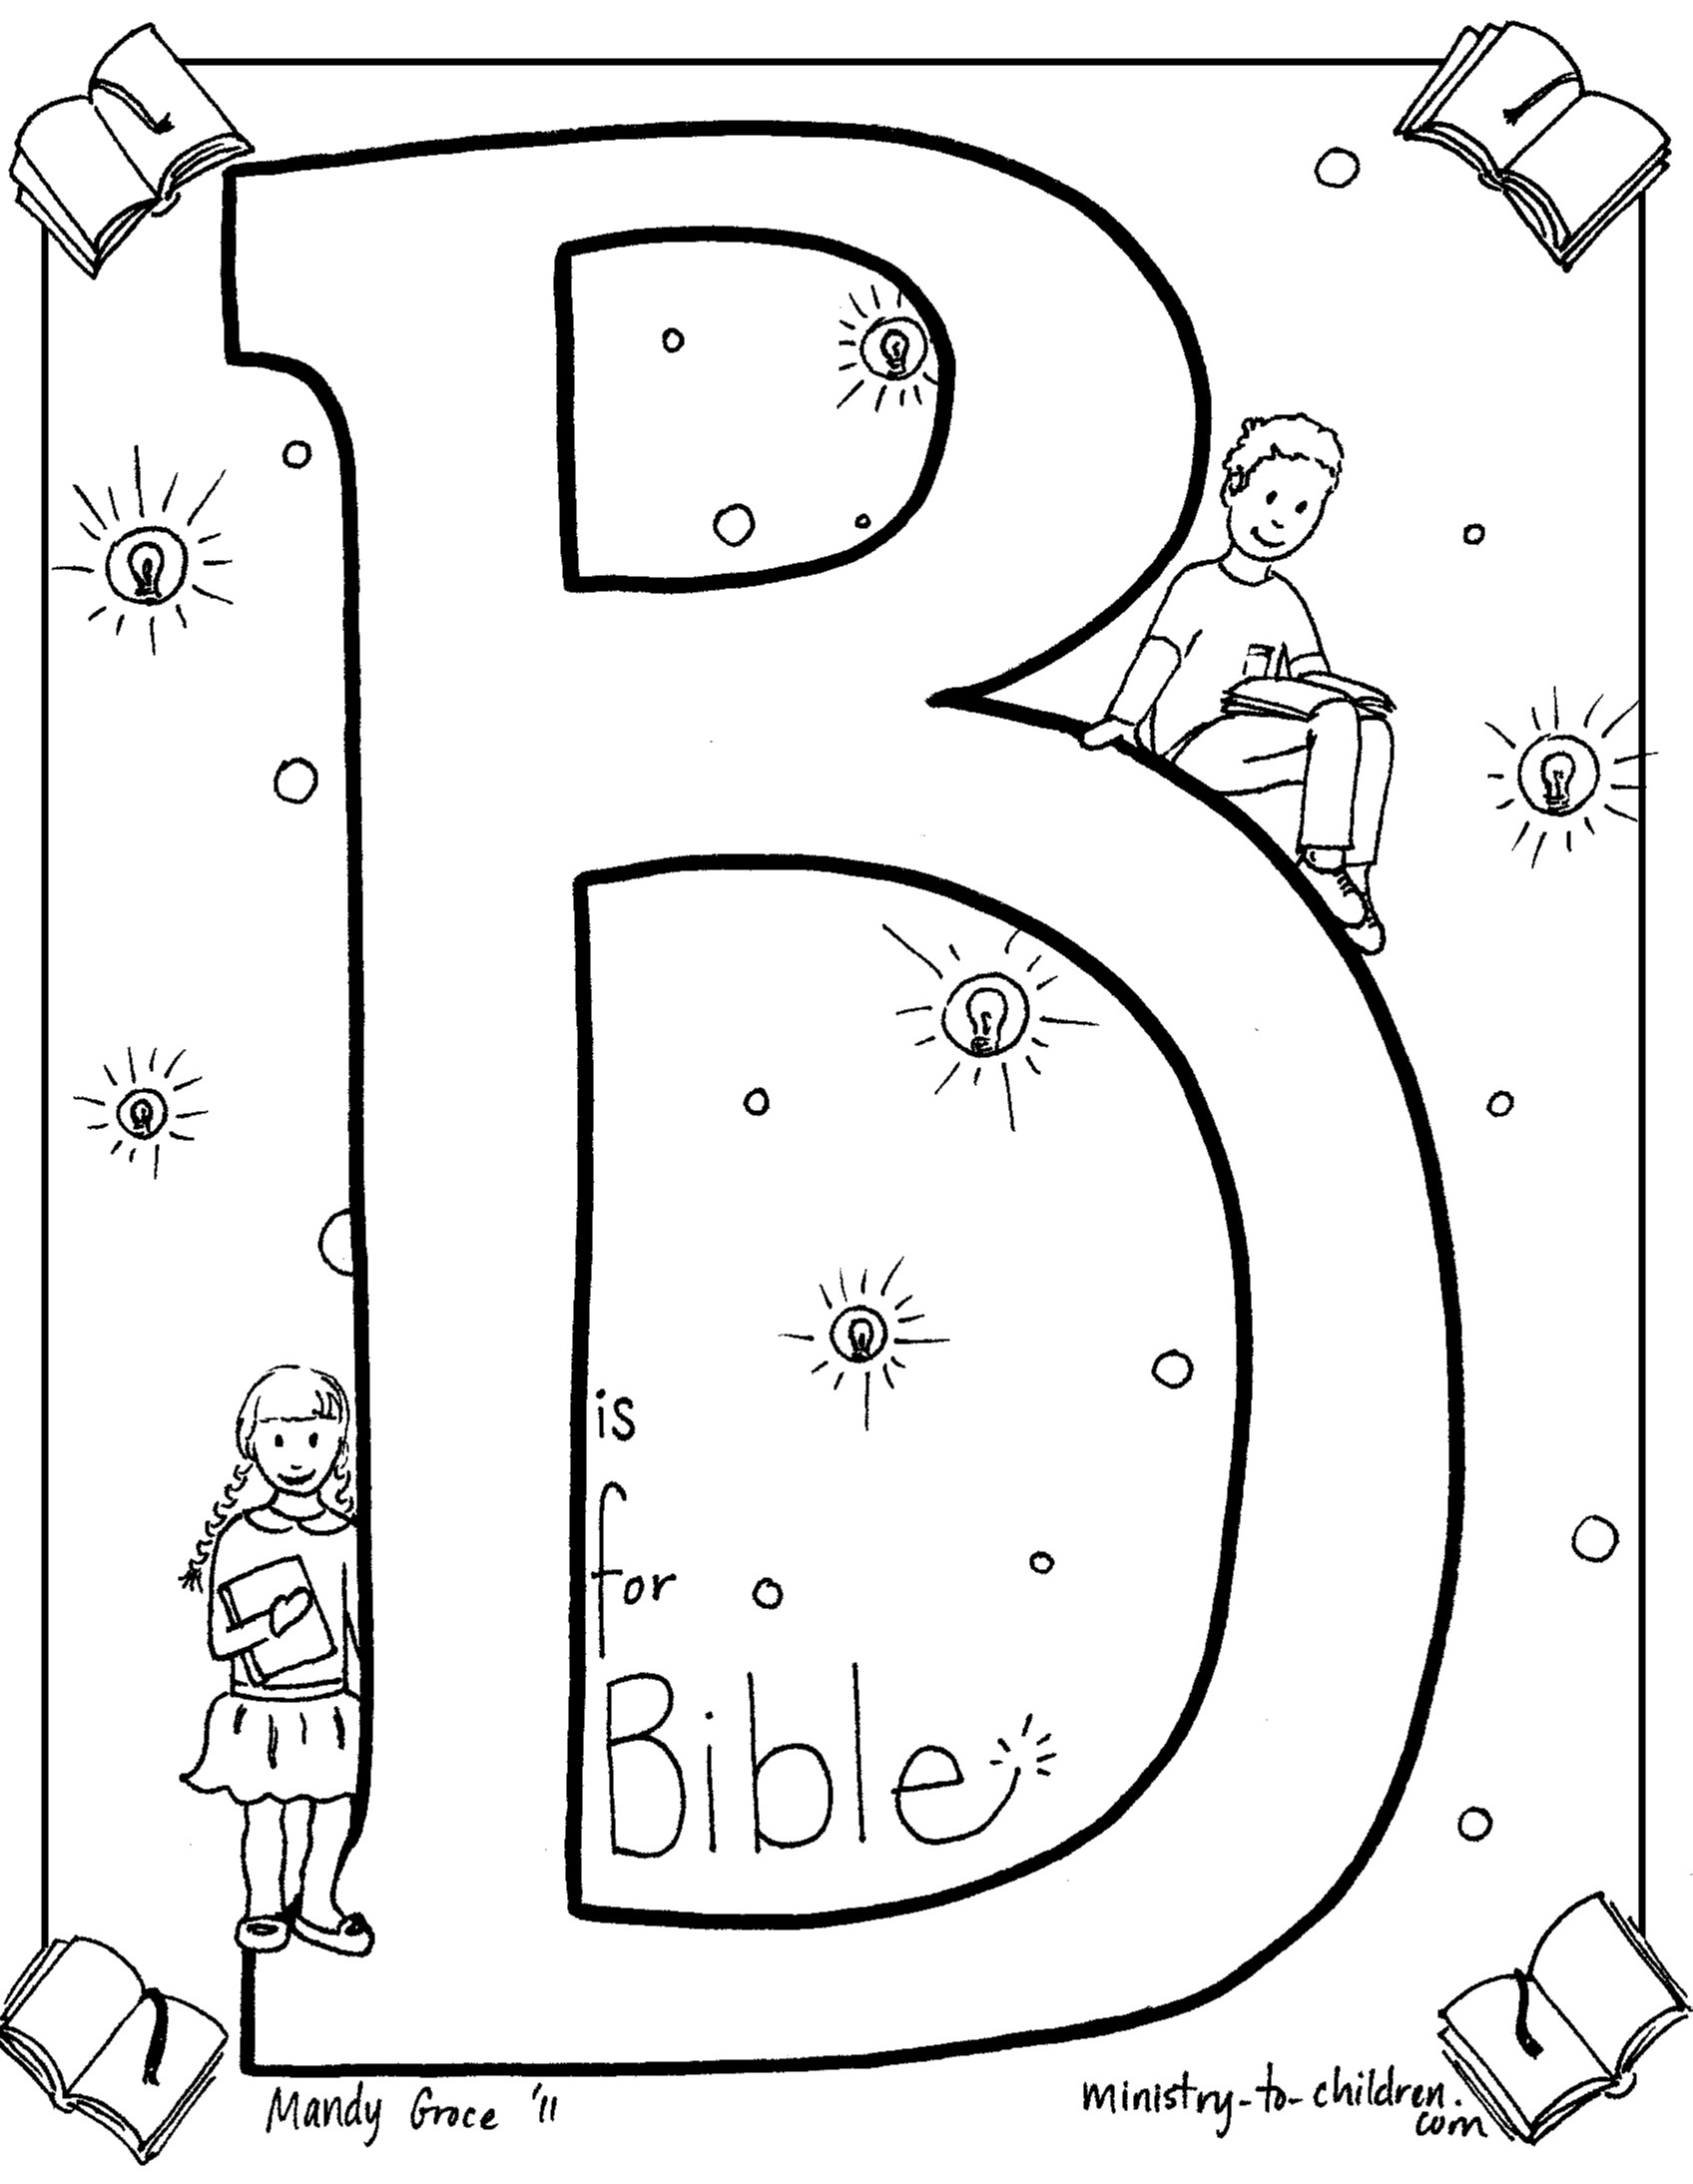 Faithful Obedience 18 Bible Coloring Pages Clip Art